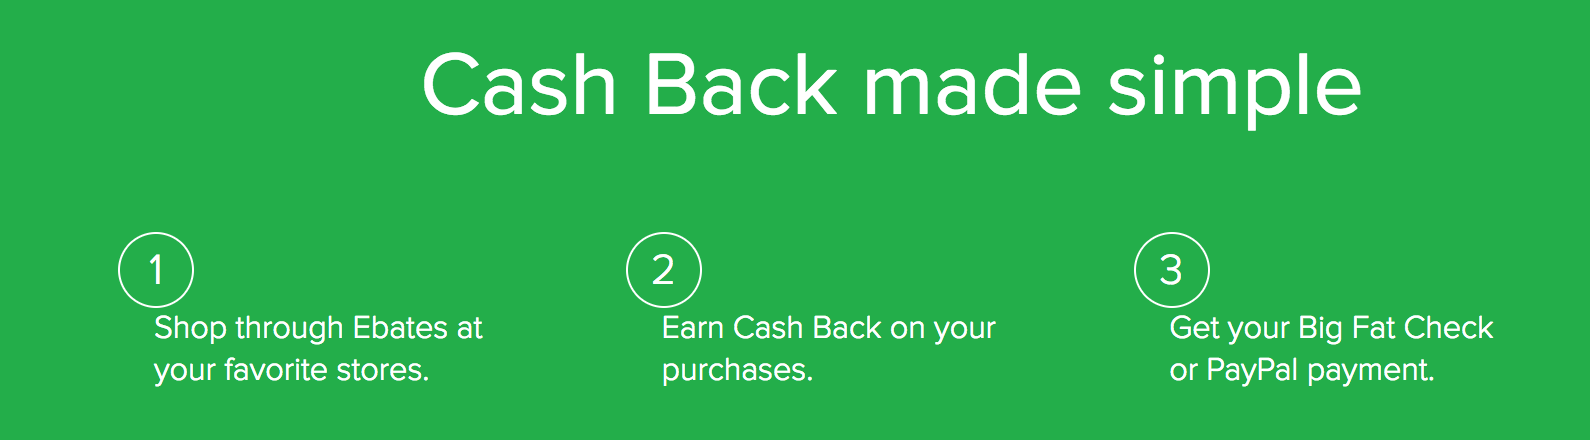 Ebates Cash Back Process